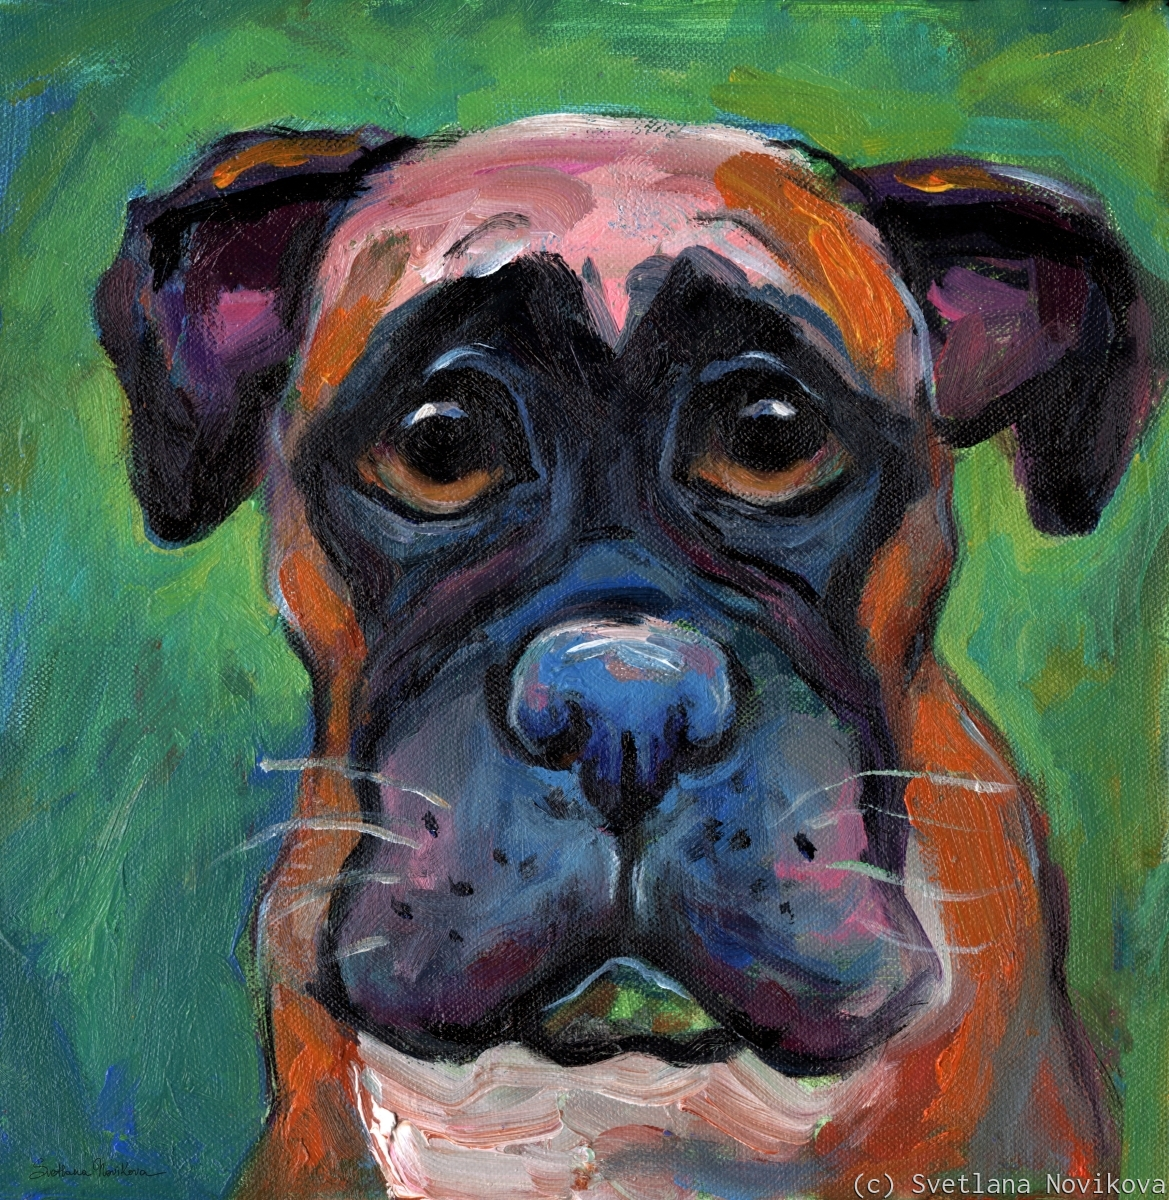 Cute Boxer puppy dog with big eyes painting (large view)